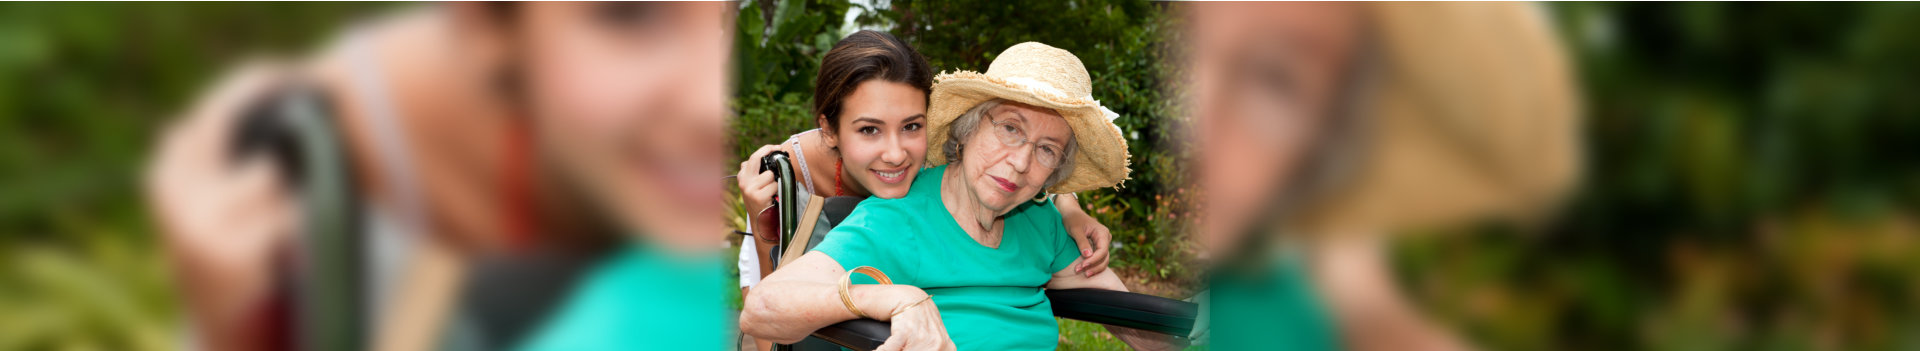 old woman on wheelchair and caregiver smiling